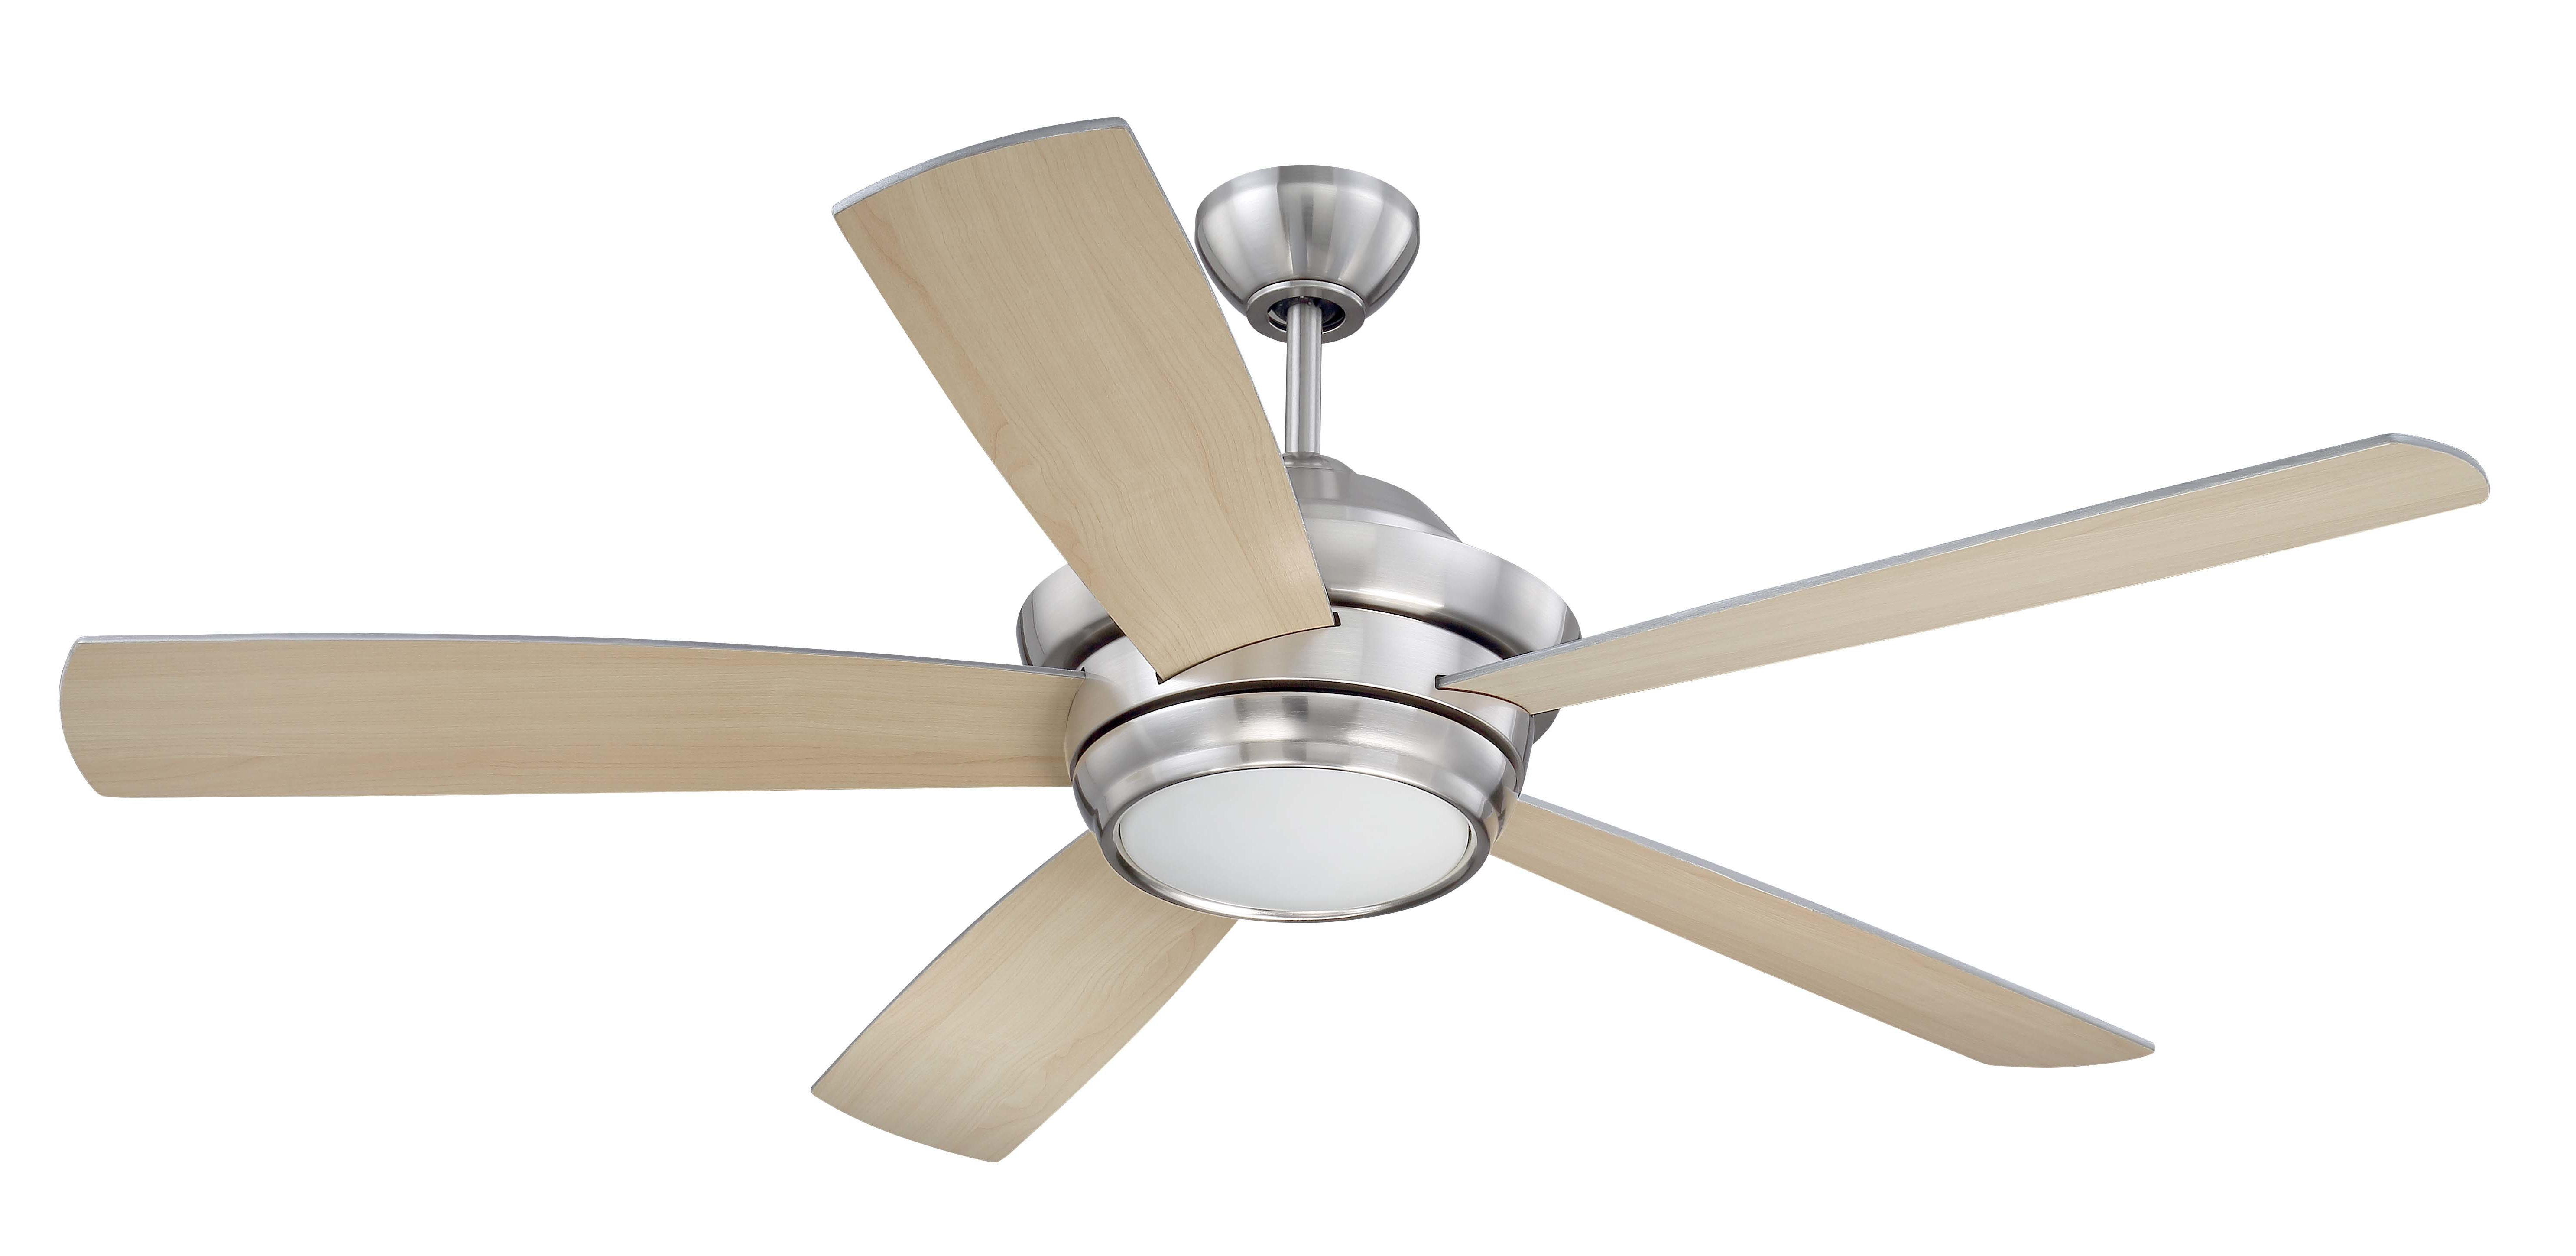 "Creslow 5 Blade Ceiling Fans With Most Up To Date 52"" Cedarton 5 Blade Ceiling Fan (View 3 of 20)"